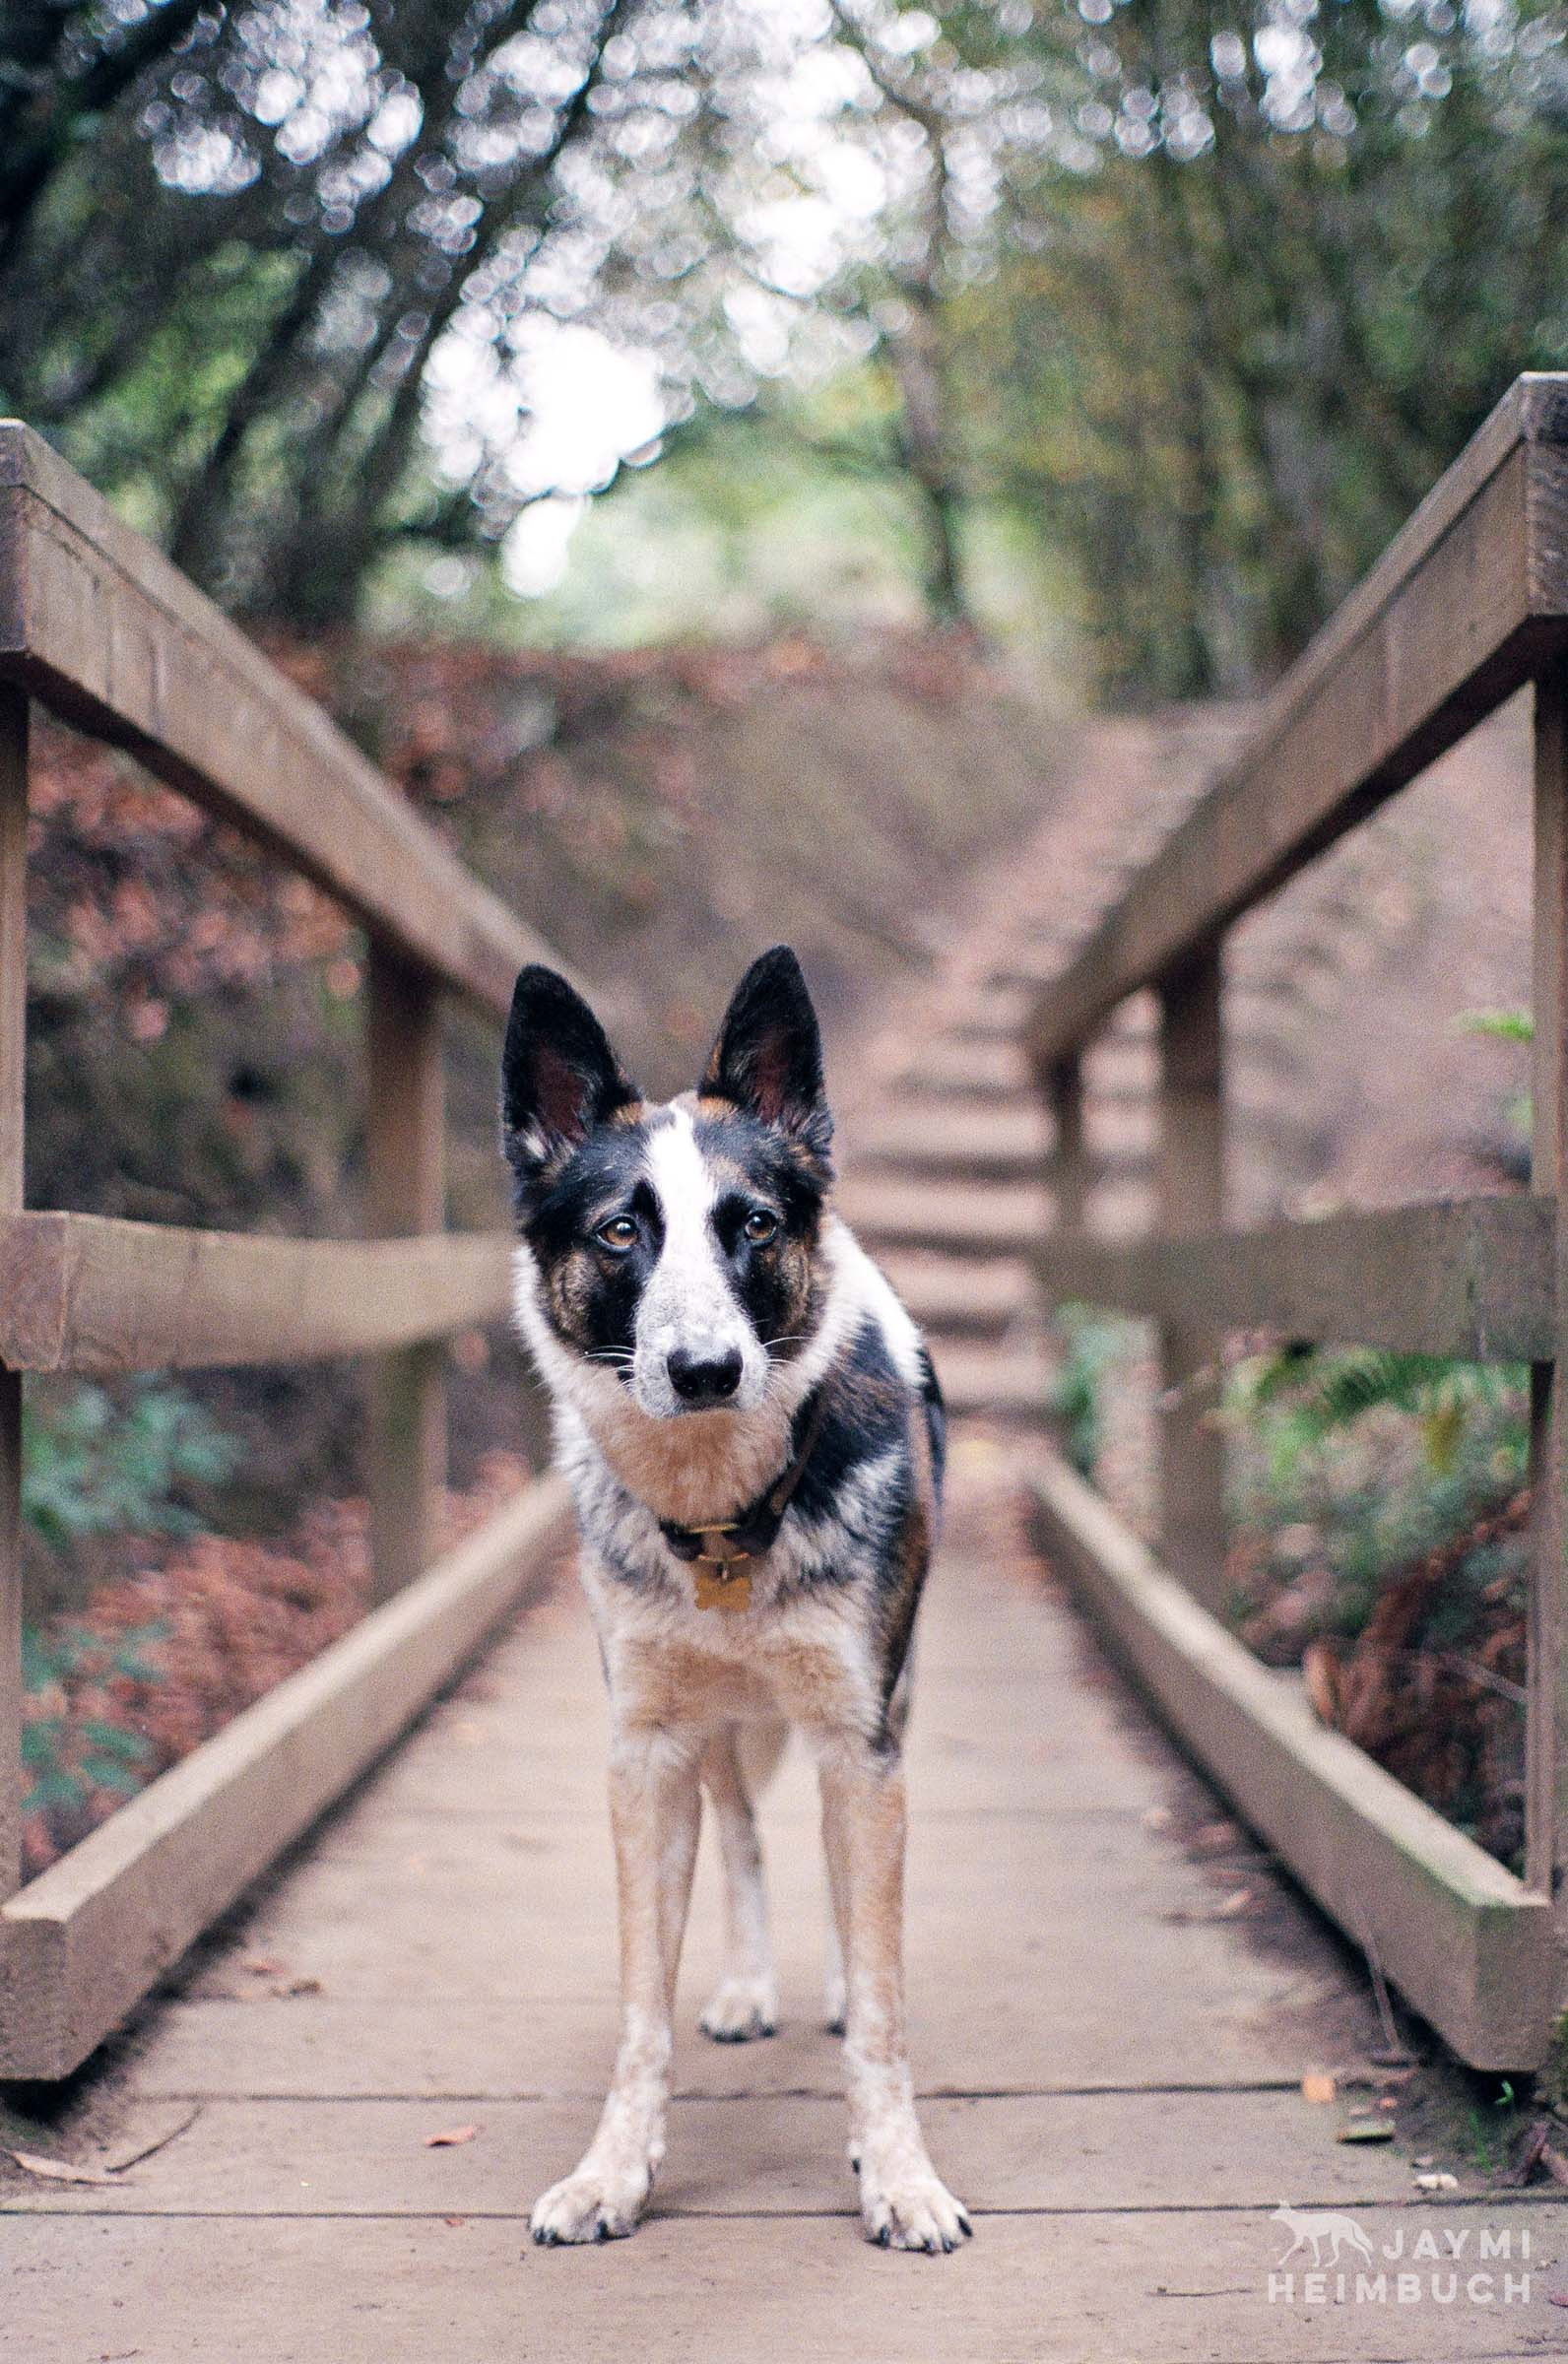 35mm film photo of a dog